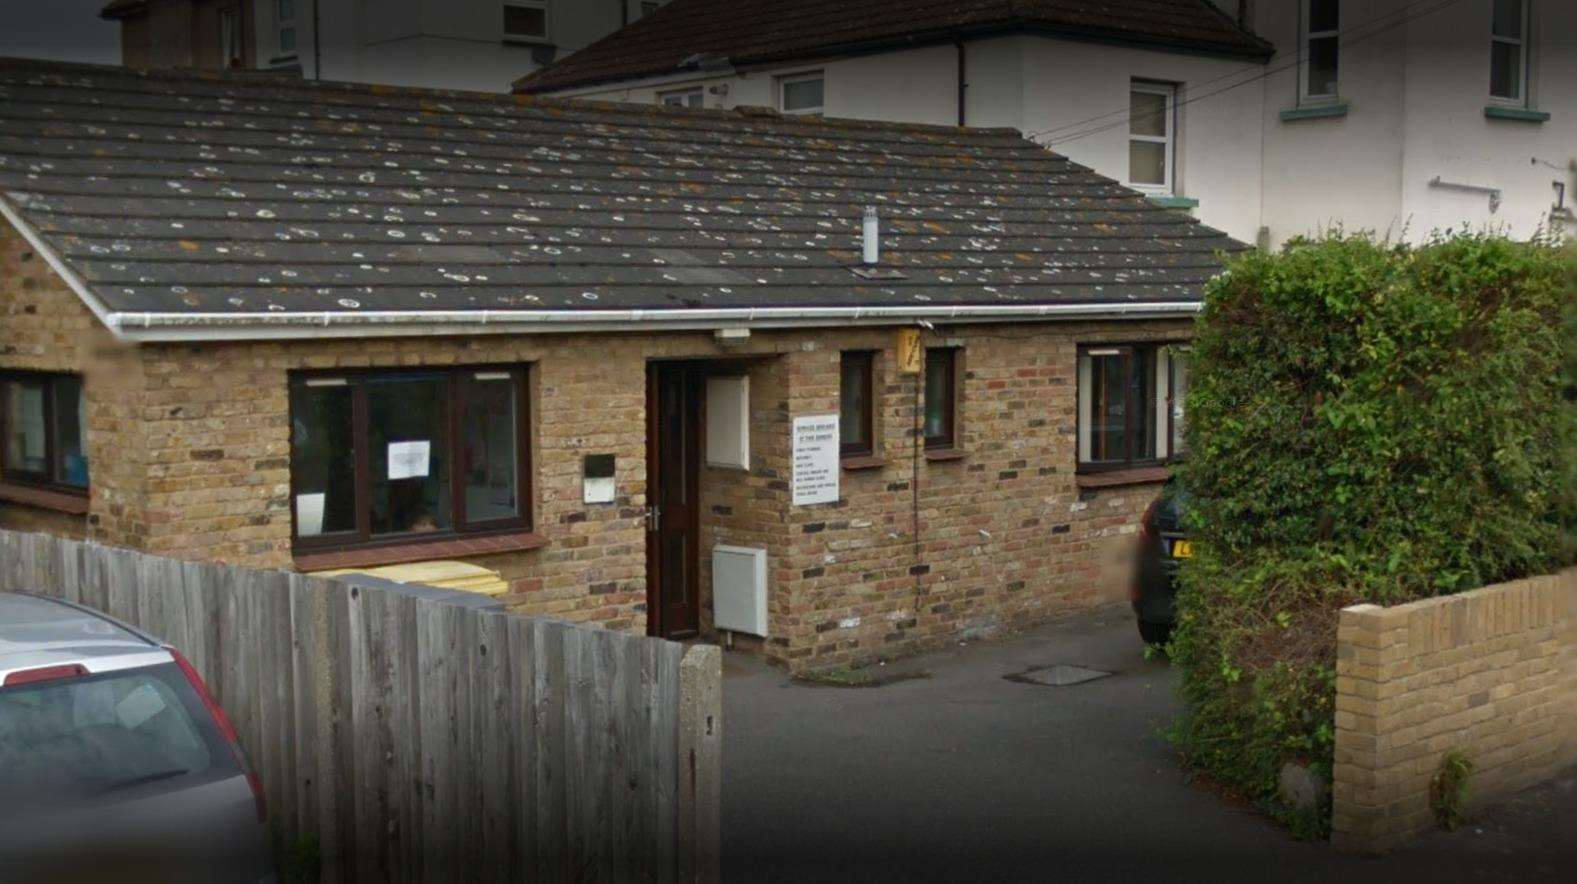 Elmdene Surgery on London Road, Greenhithe. Picture: Google Street View